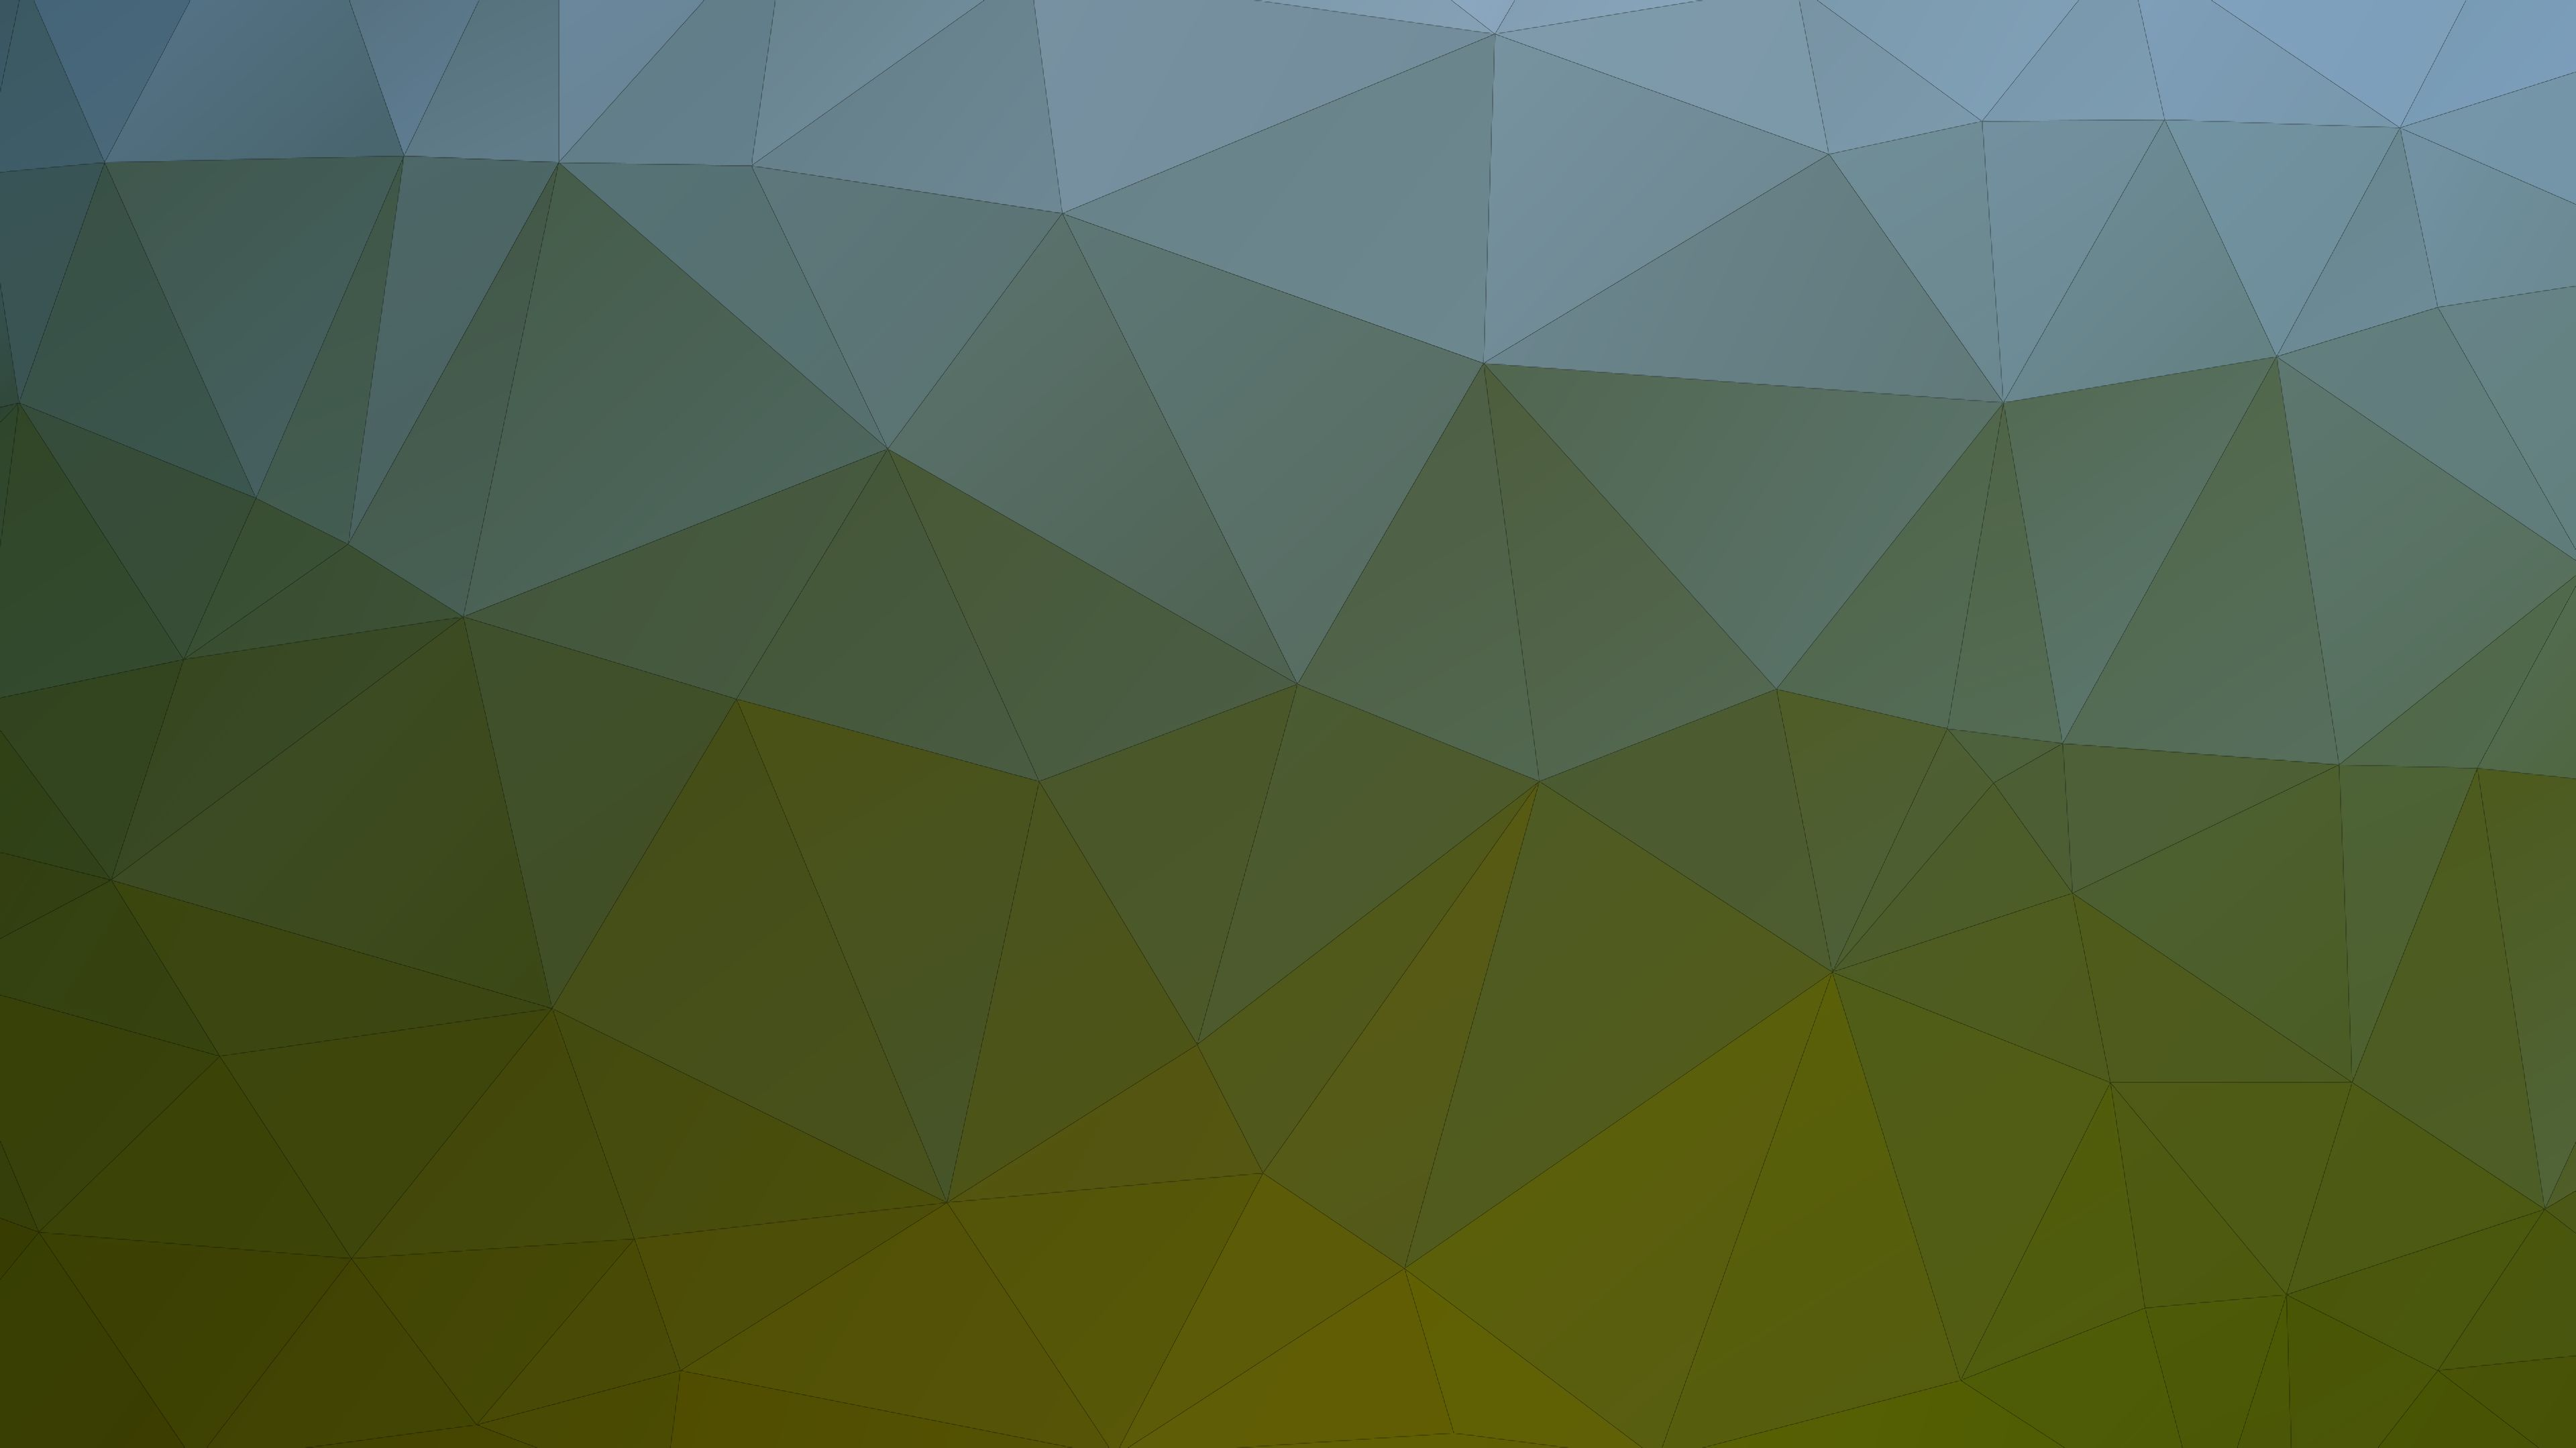 133885 download wallpaper Textures, Texture, Polygon, Triangles, Gradient, Convex, Geometric screensavers and pictures for free